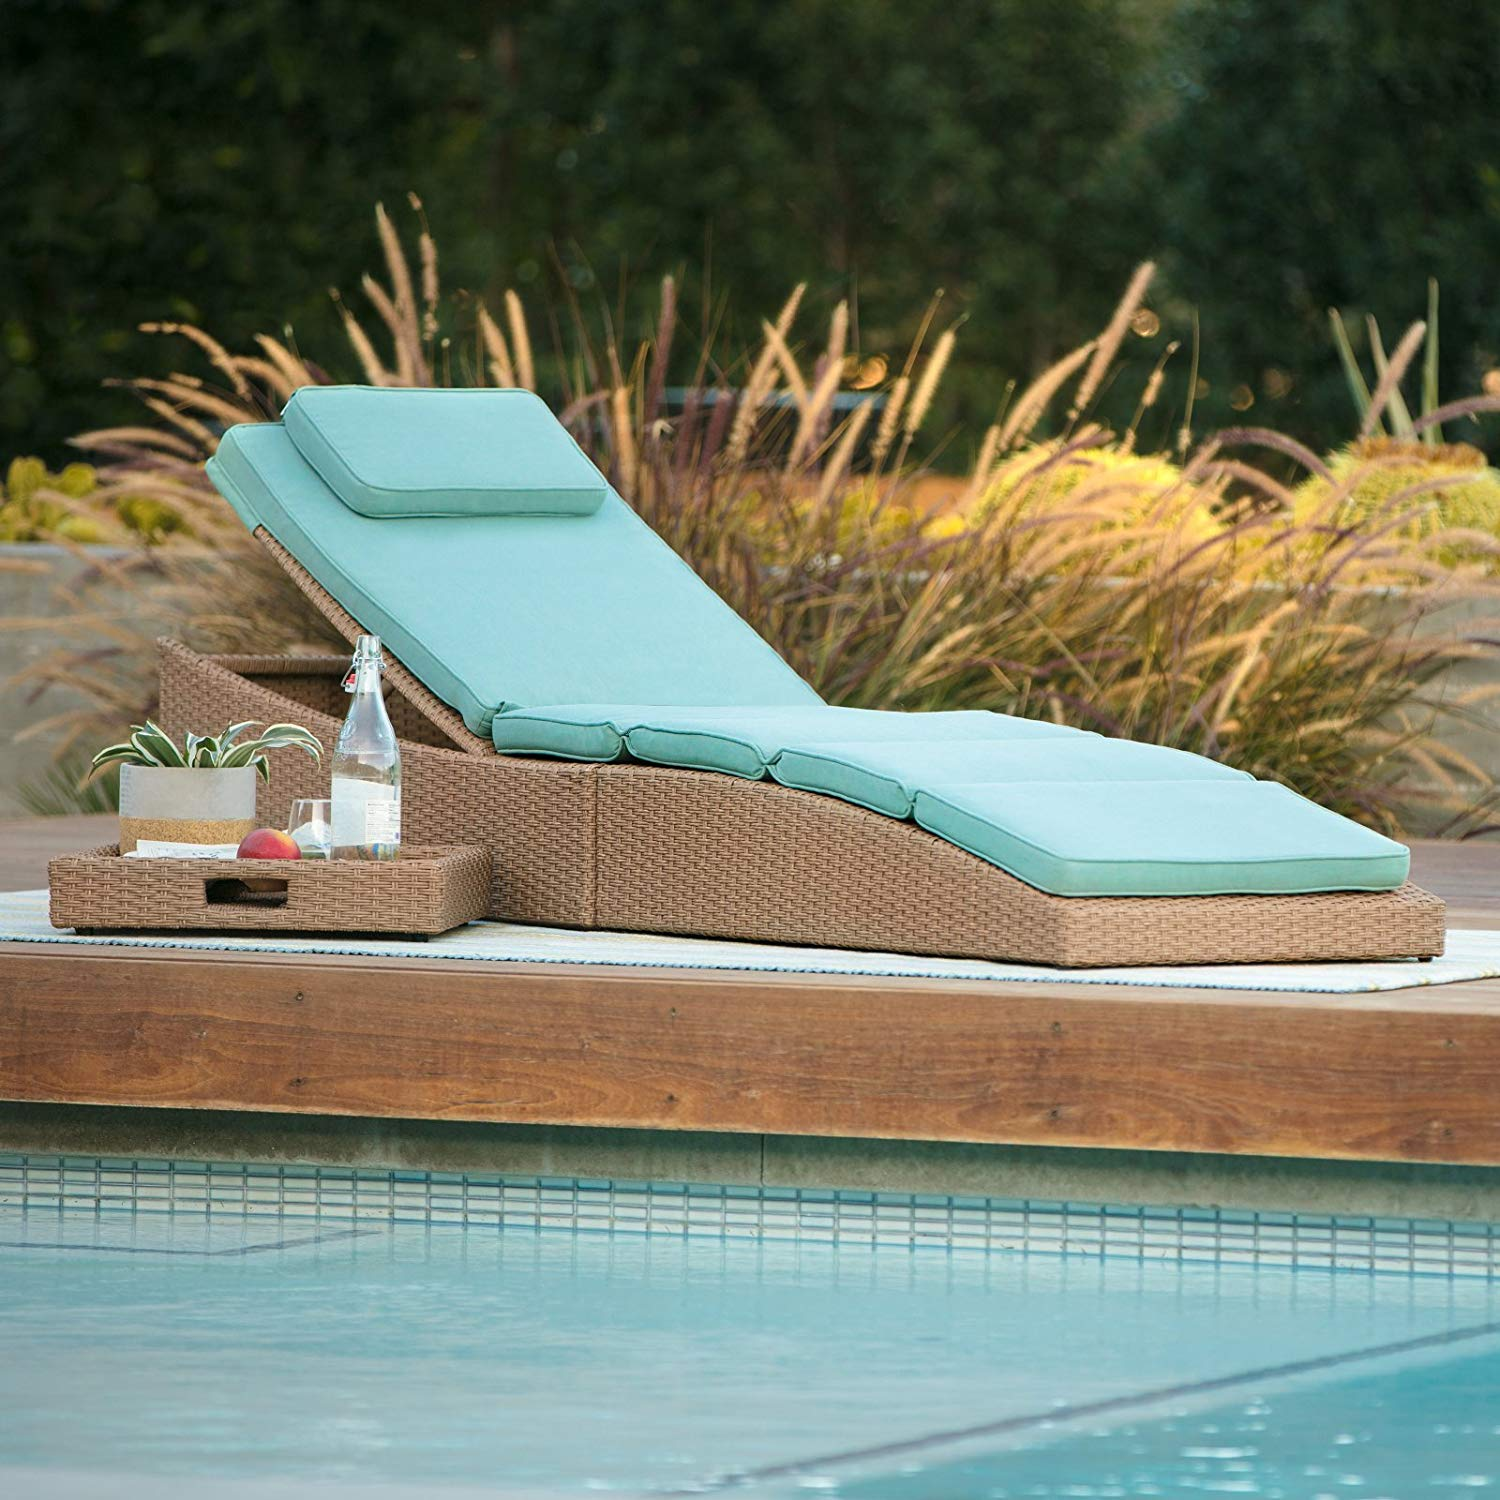 Care 4 Home LLC Folding Cushion Chaise Lounger, Patio Pool Multi Position Space Saving Design, All Weather Wicker, Contemporary Style, Outdoor Furniture, Beach